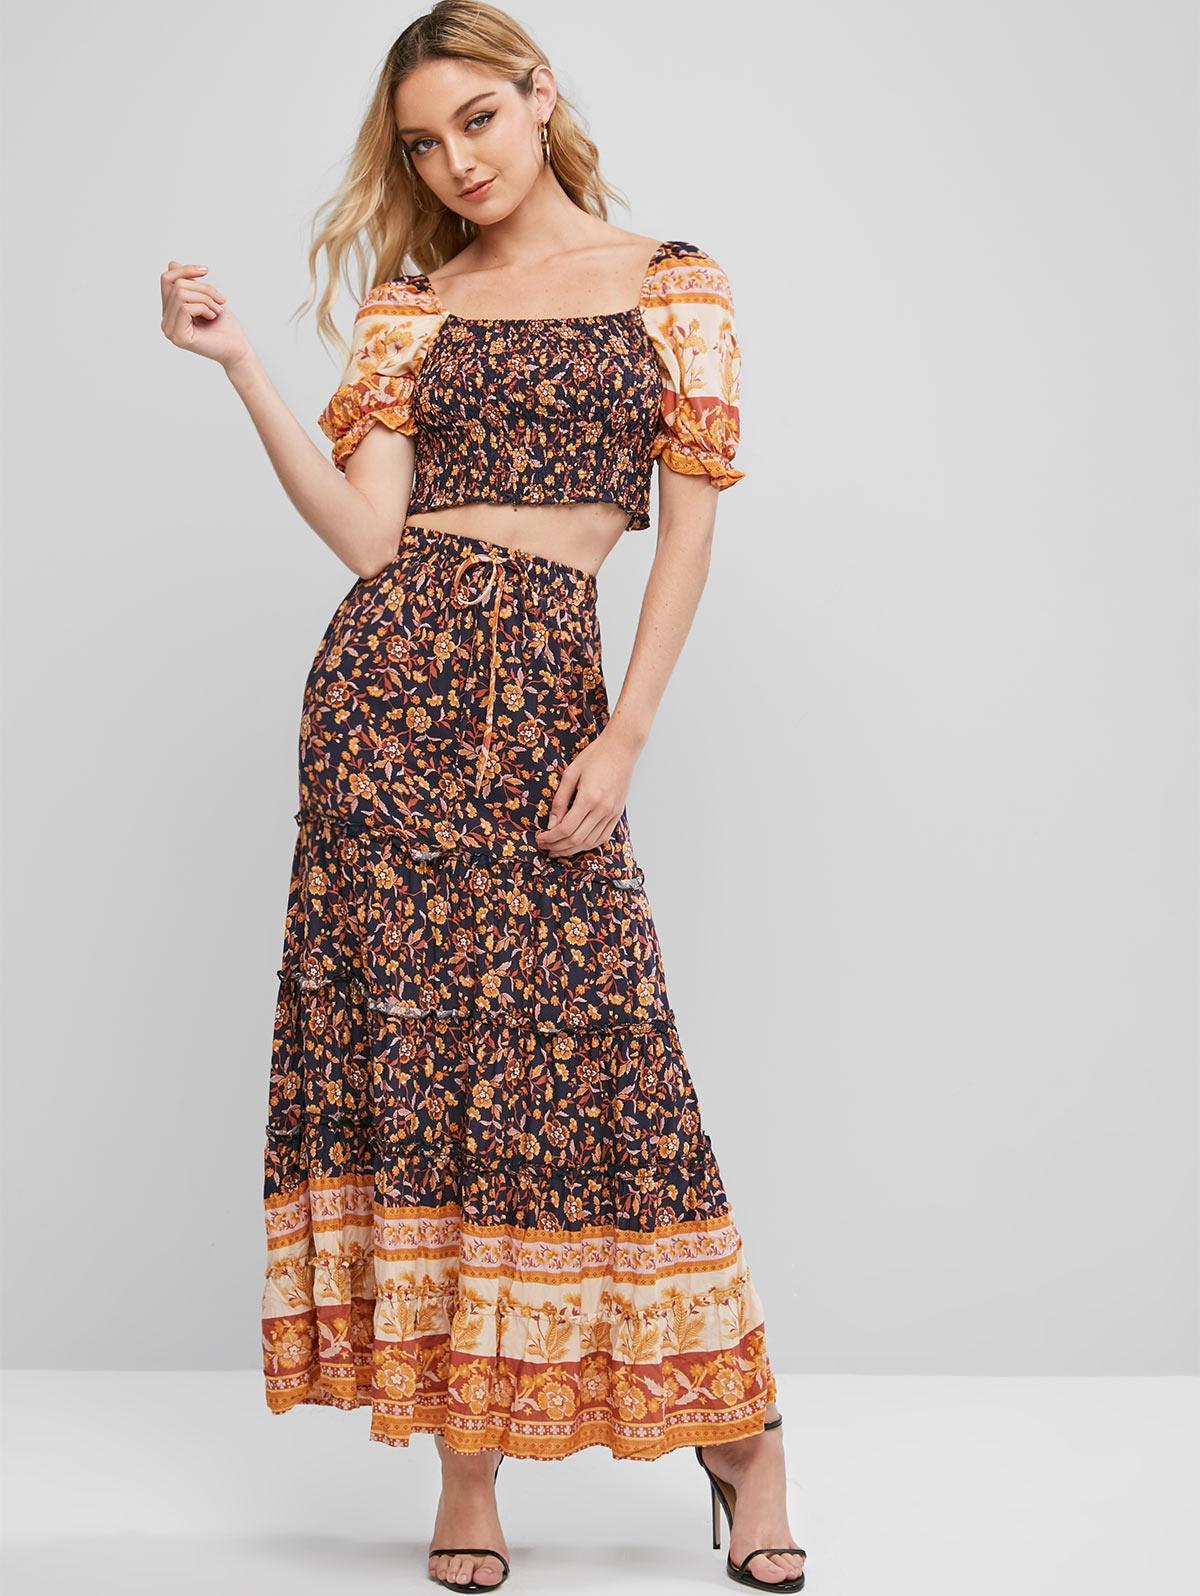 Drawstring Smocked Floral Two Piece Dress